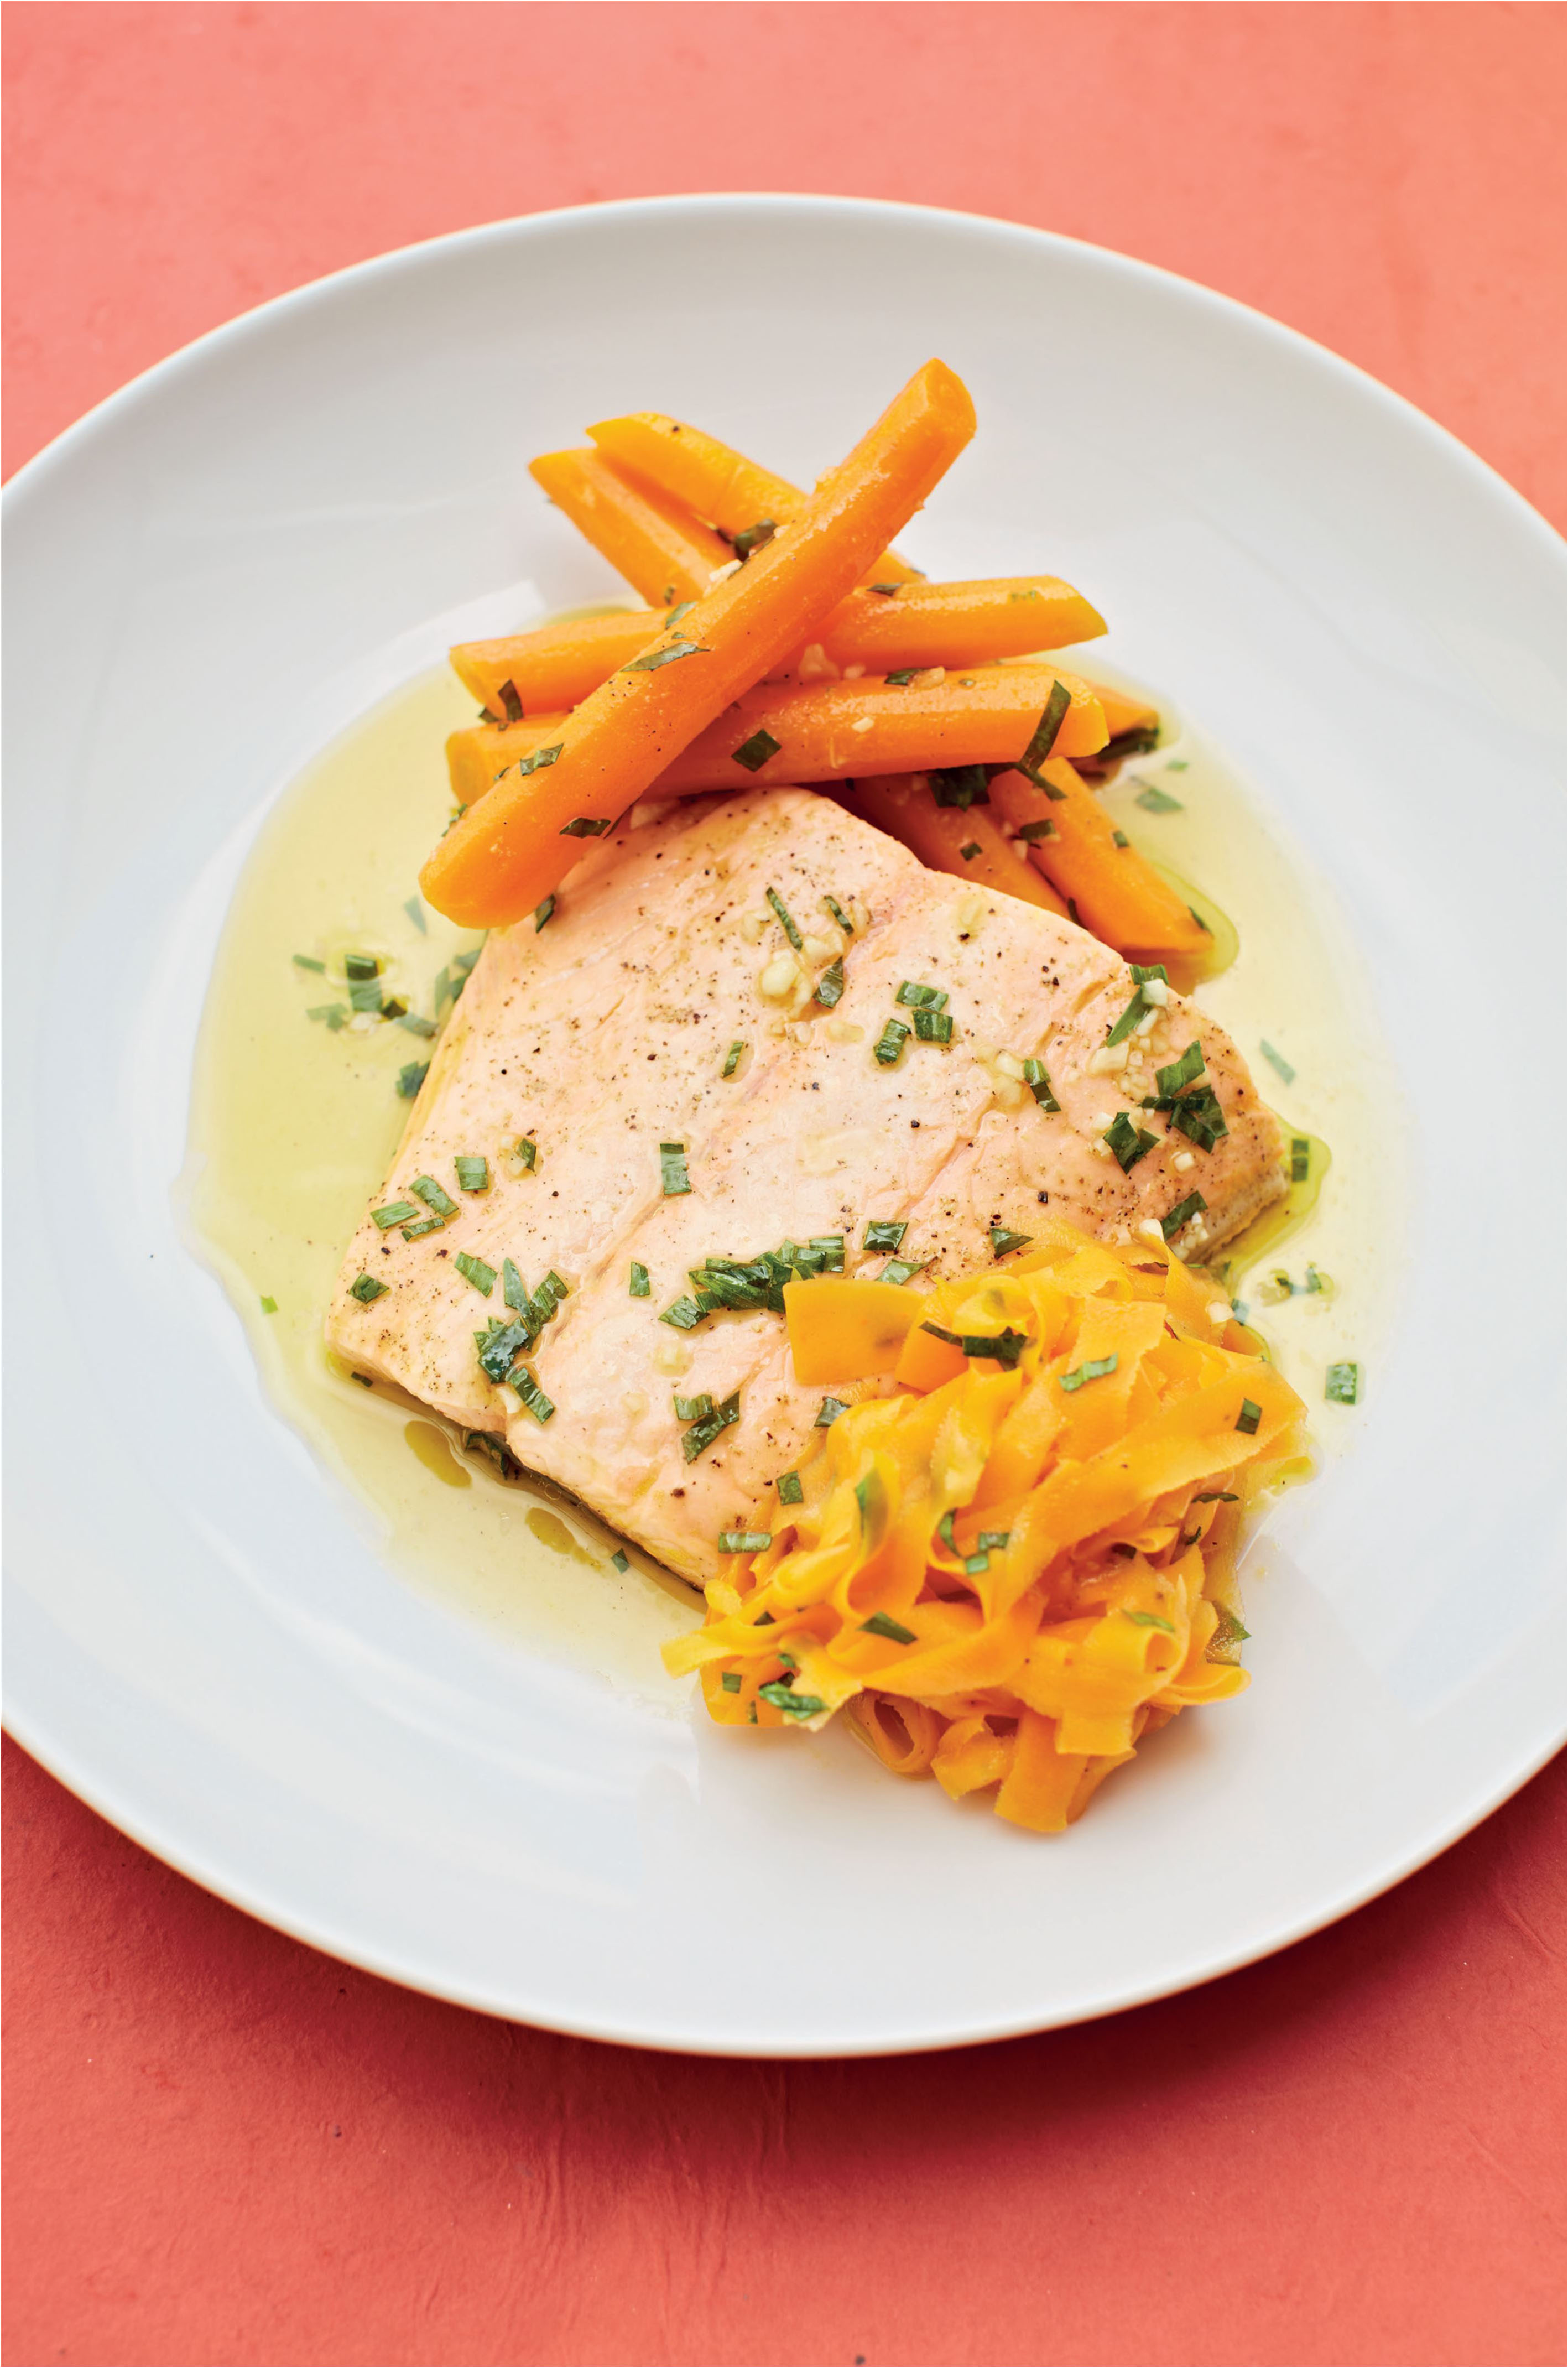 Salmon poached in tarragon vinegar with carrots in brown butter